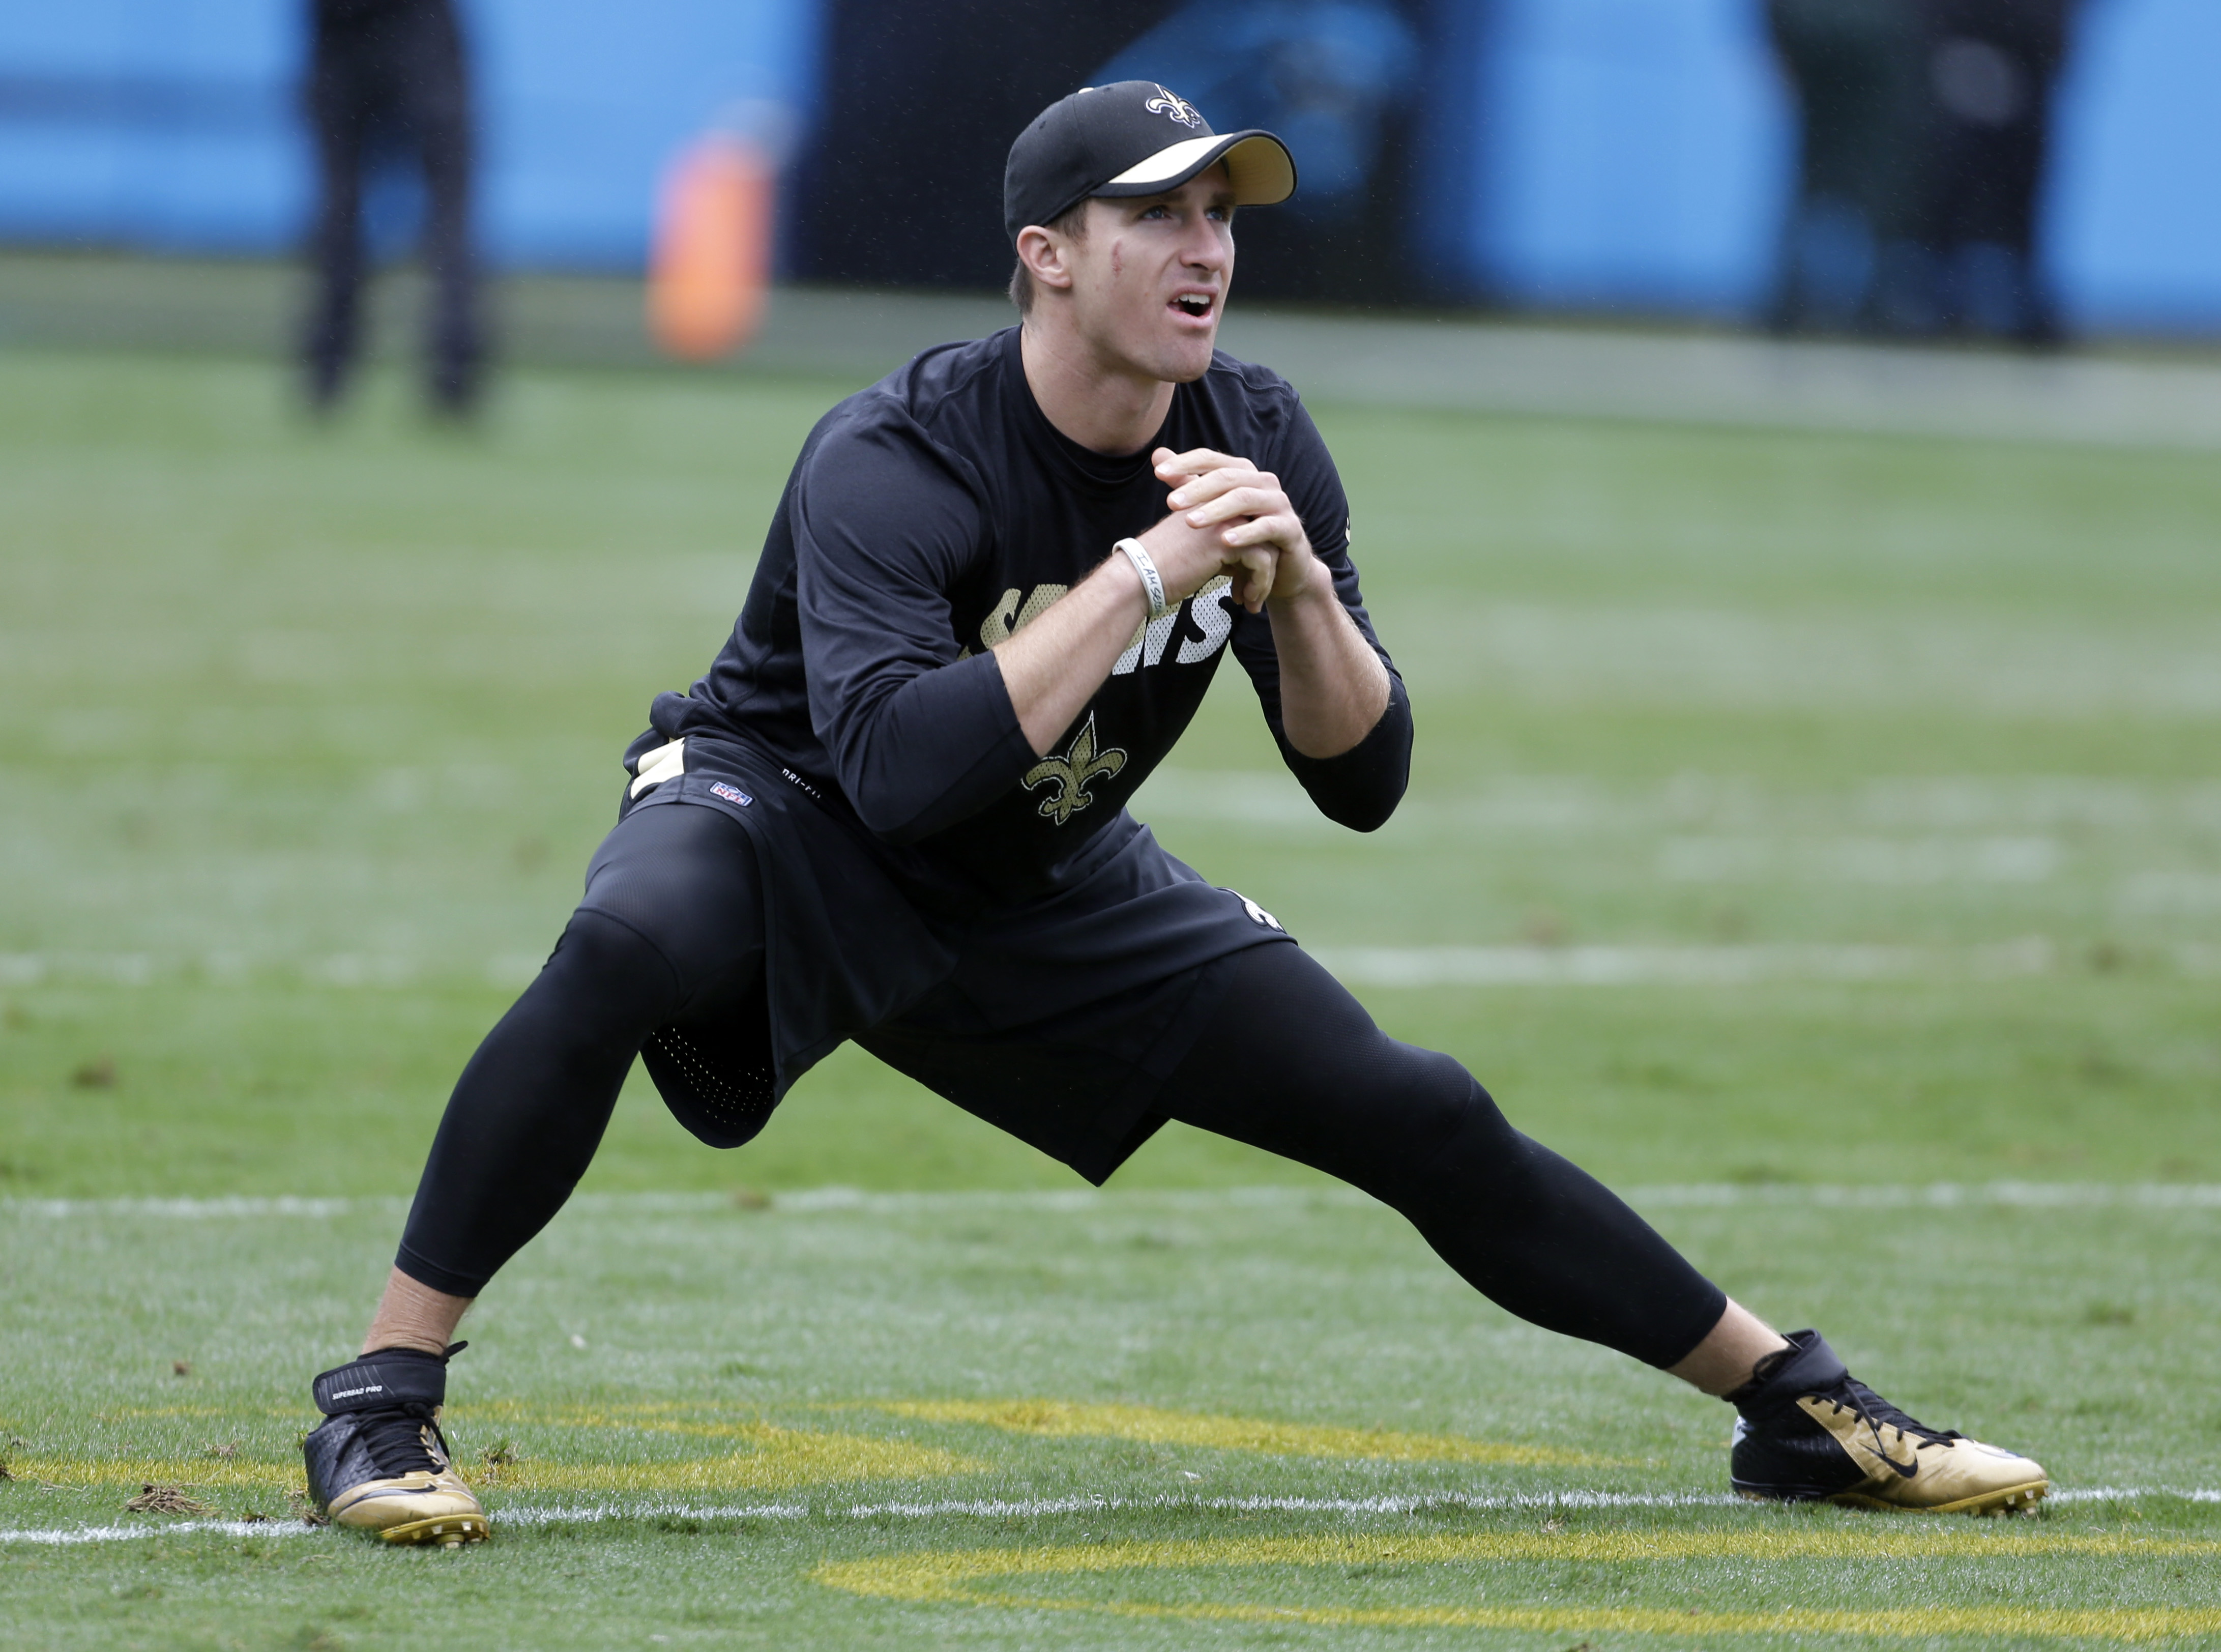 FILE - In this Sept. 27, 2015, file photo, New Orleans Saints' Drew Brees stretches before an NFL football game against the Carolina Panthers in Charlotte, N.C. Brees is trying to work his way back into the lineup after missing last week's game with a thr